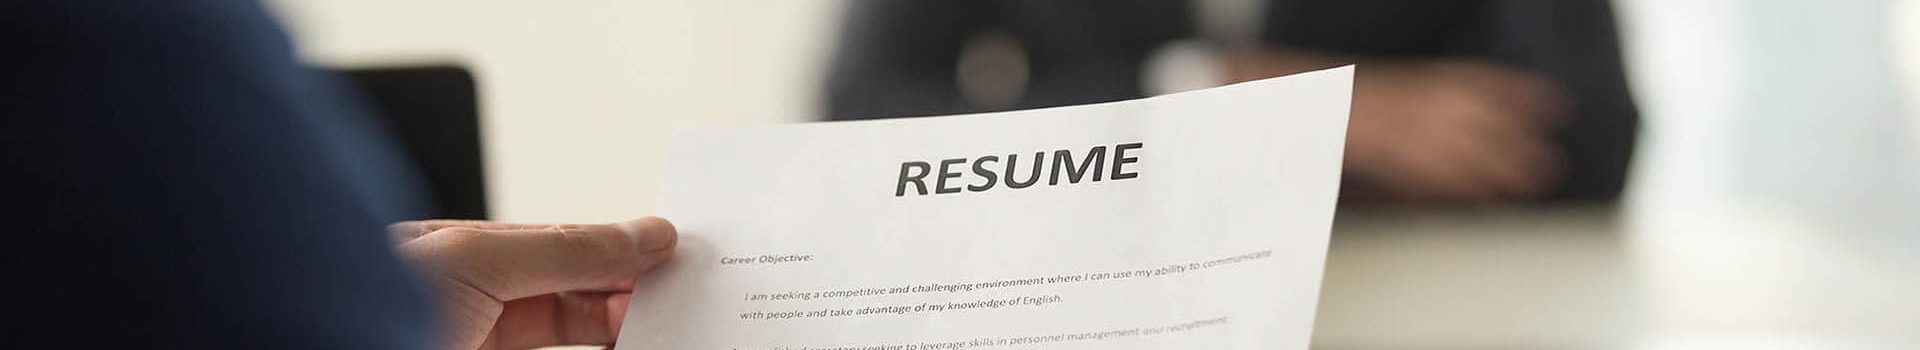 hand holding resume